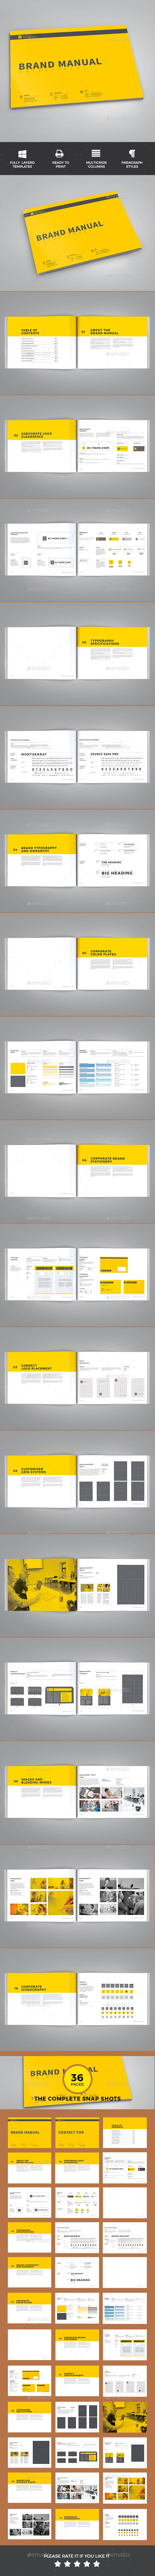 Brand Manual Template FREE InDesign Templates - oukas.info